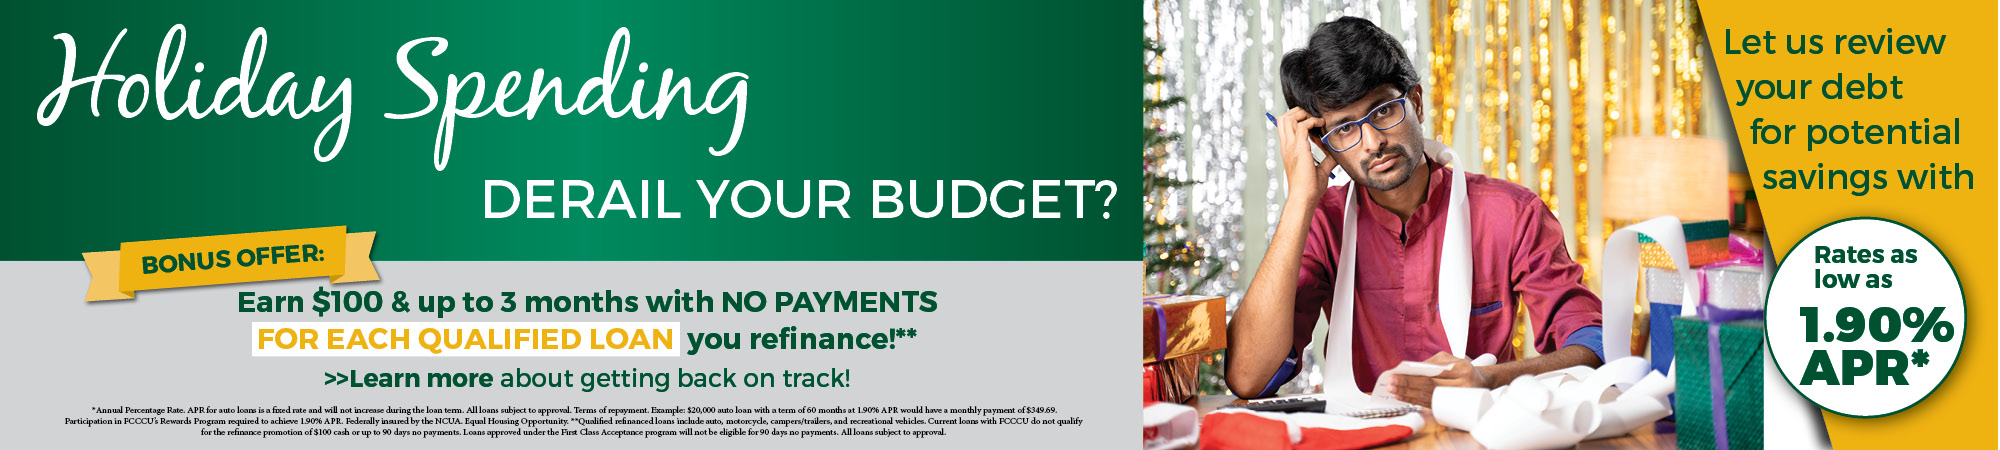 Holiday Spending Derail Your Budget